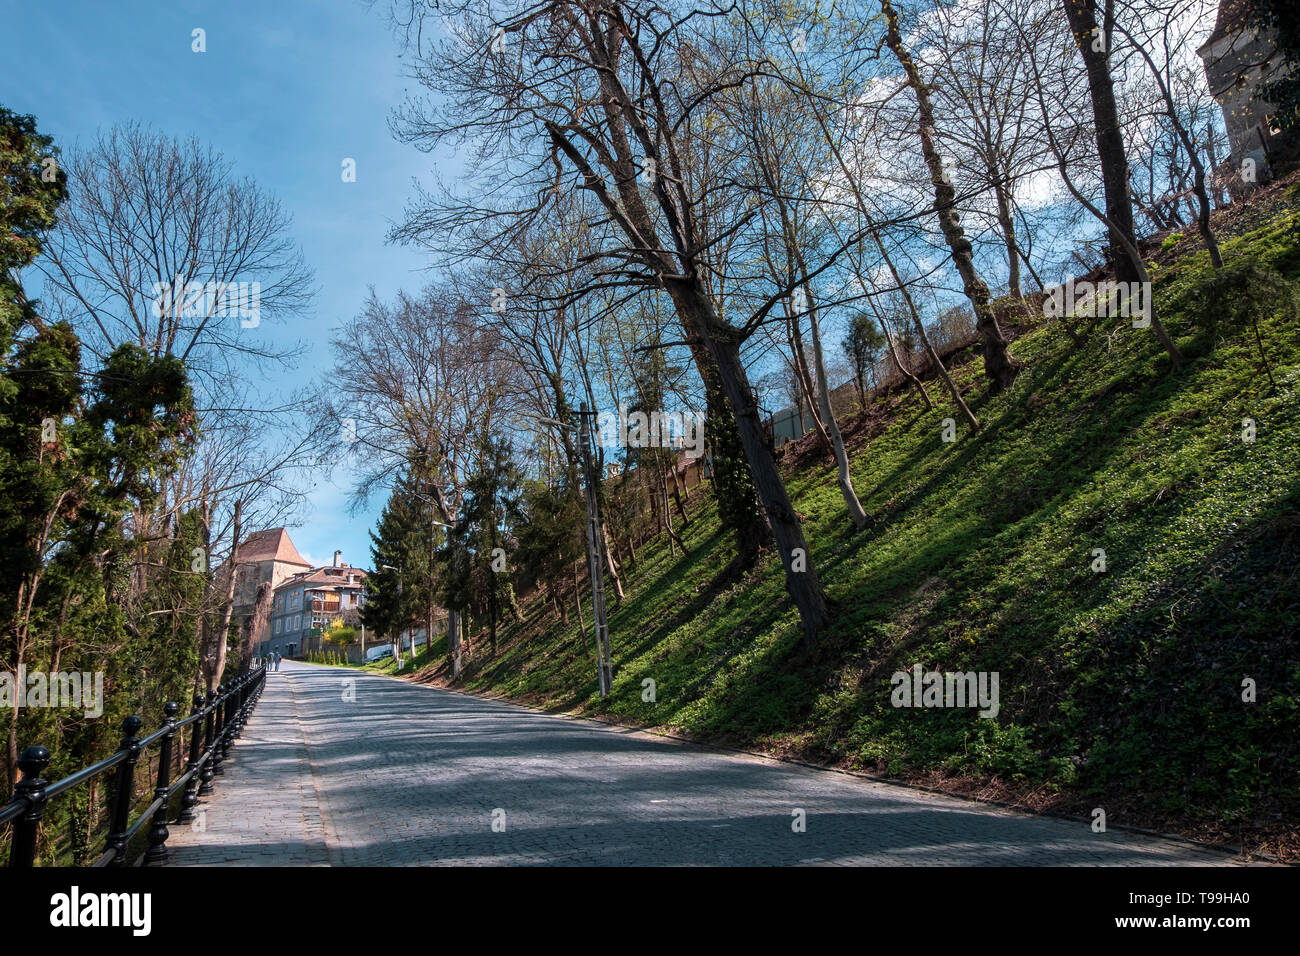 Alley surrounded by nature, leading to the Tailors Tower. Wide street view on a sunny day in spring - Stock Image